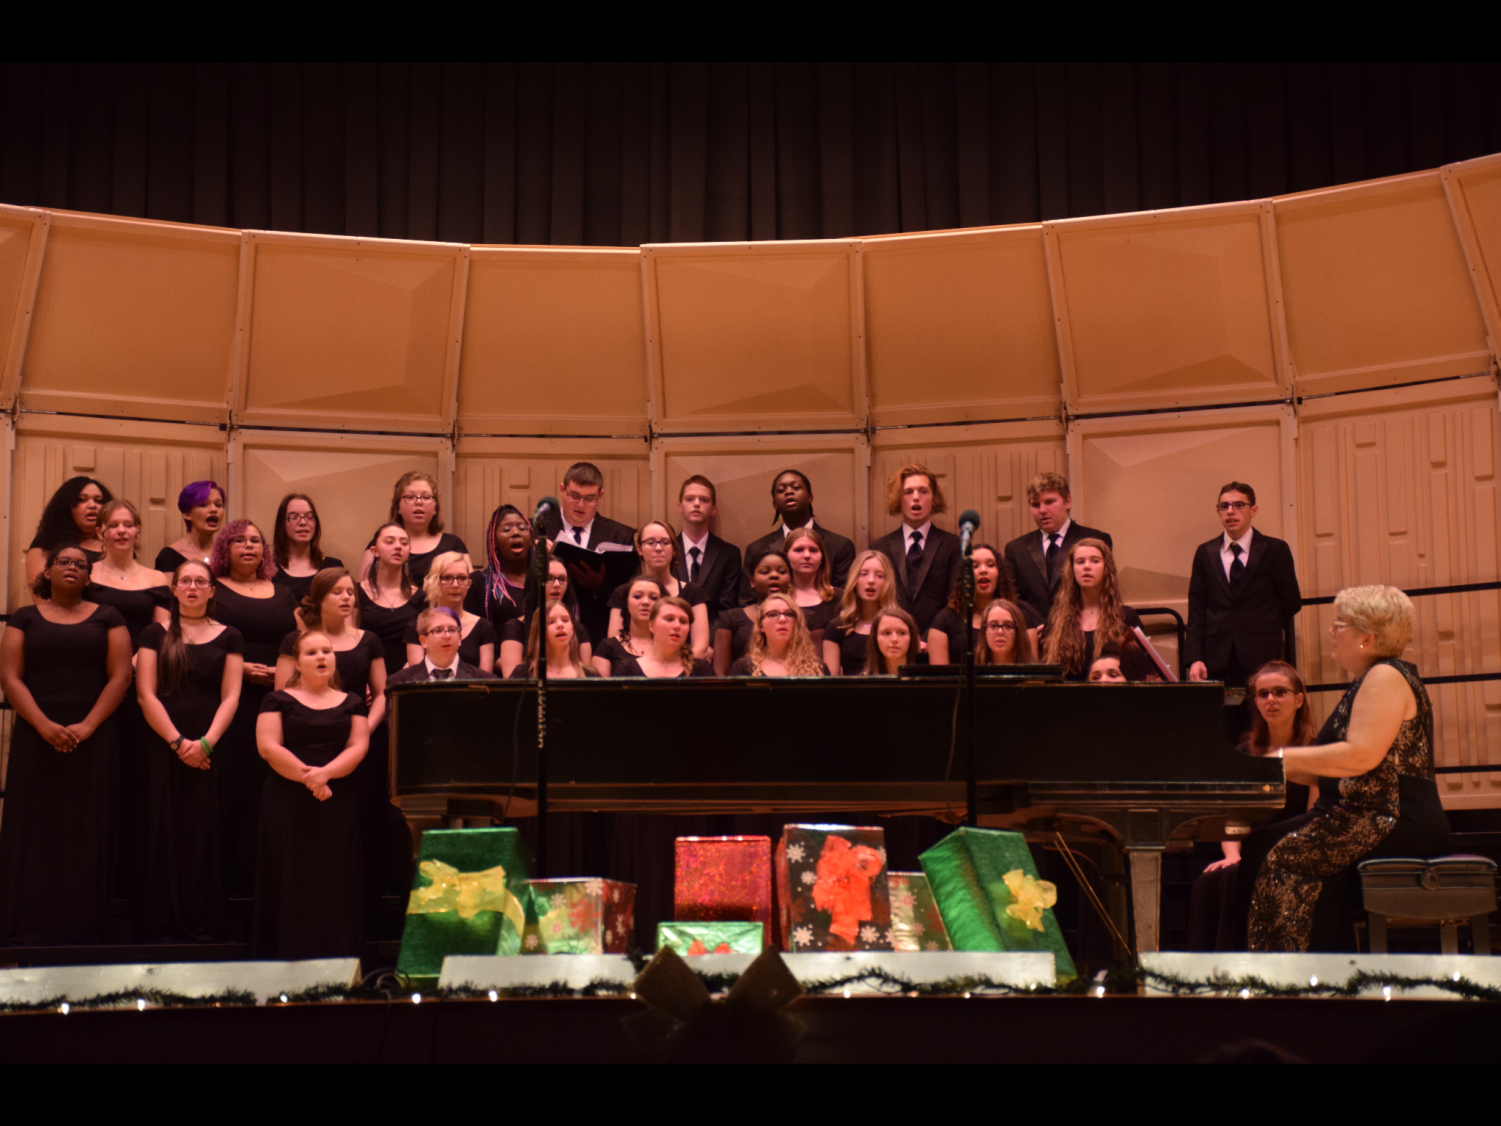 """Members of the PAHS choir sing during their concert on December 12, 2019. They learned challenging songs this year to impress their audience. """"I looked forward to making people happy and proudly singing with the choir,"""" said Junior Christina Huff."""